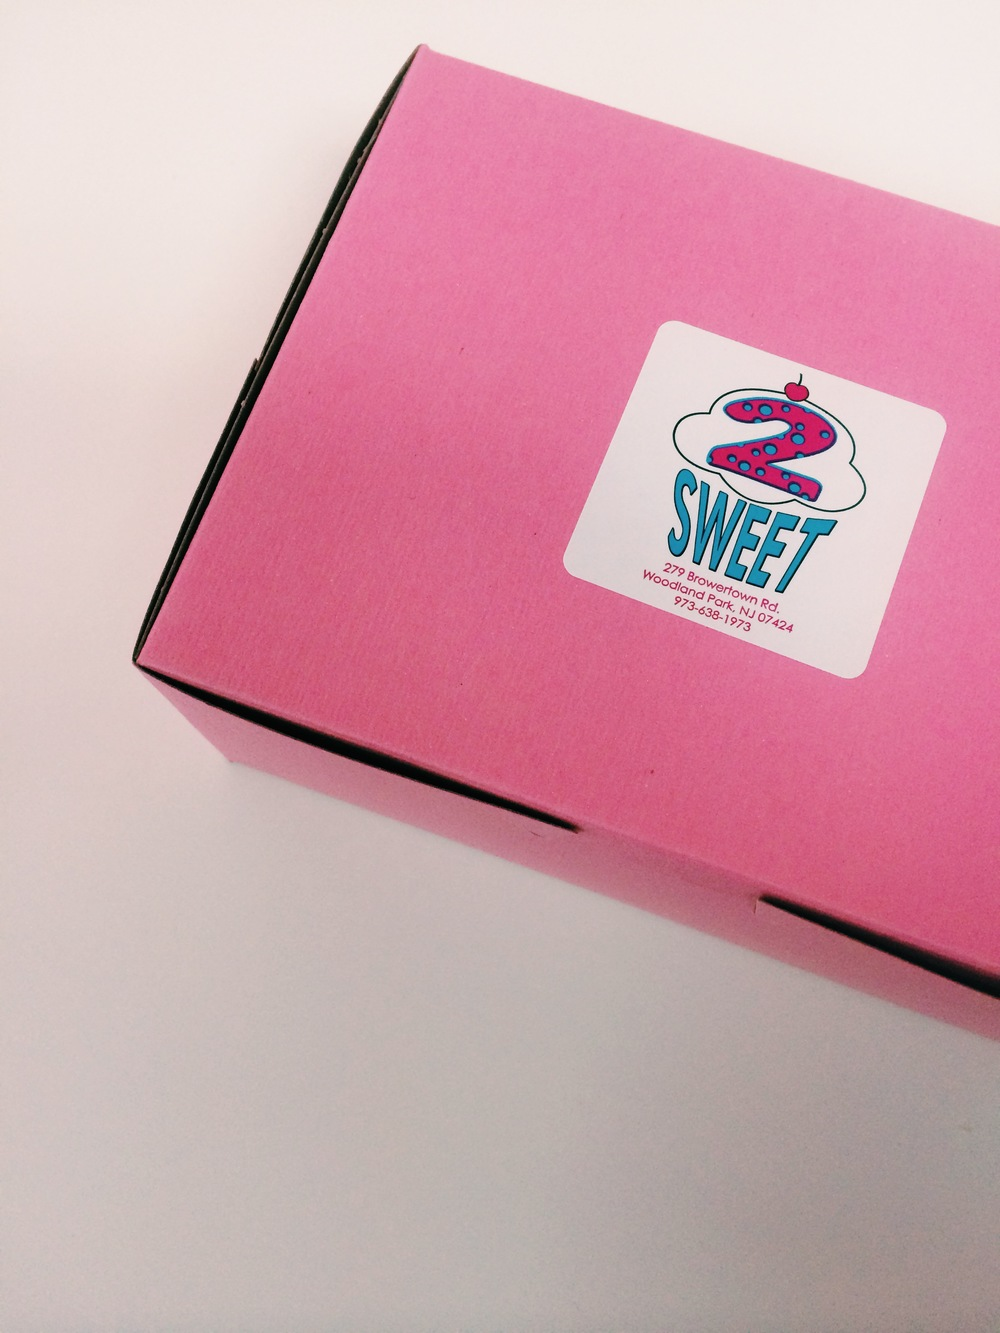 Even the boxes are sweet.